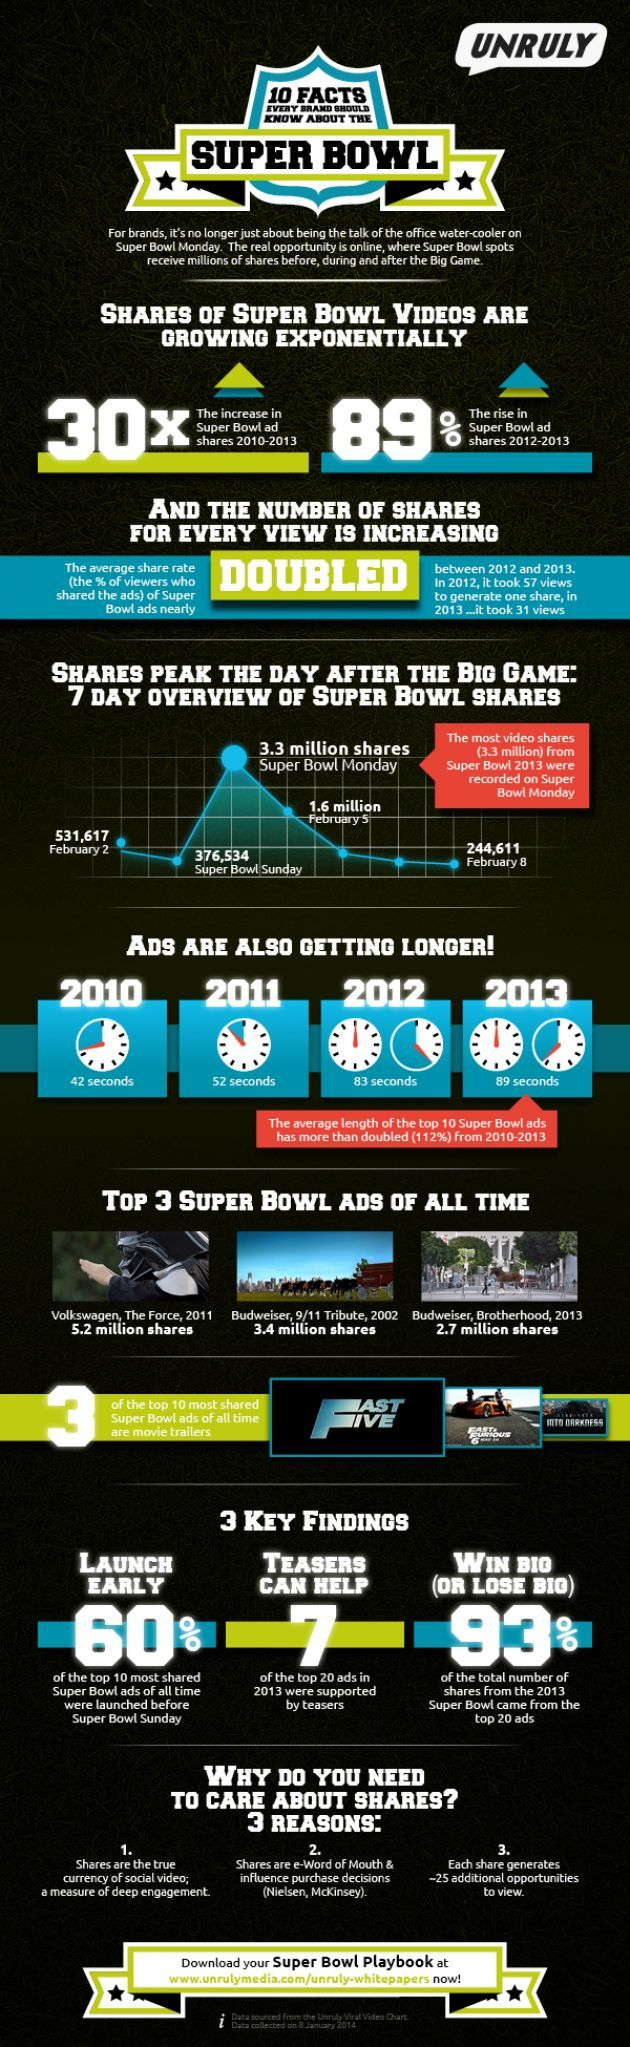 10 Super Bowl Facts Your Brand Needs To Know BY Will Yakowicz  Few advertising vehicles can get your company noticed as quickly as online ...